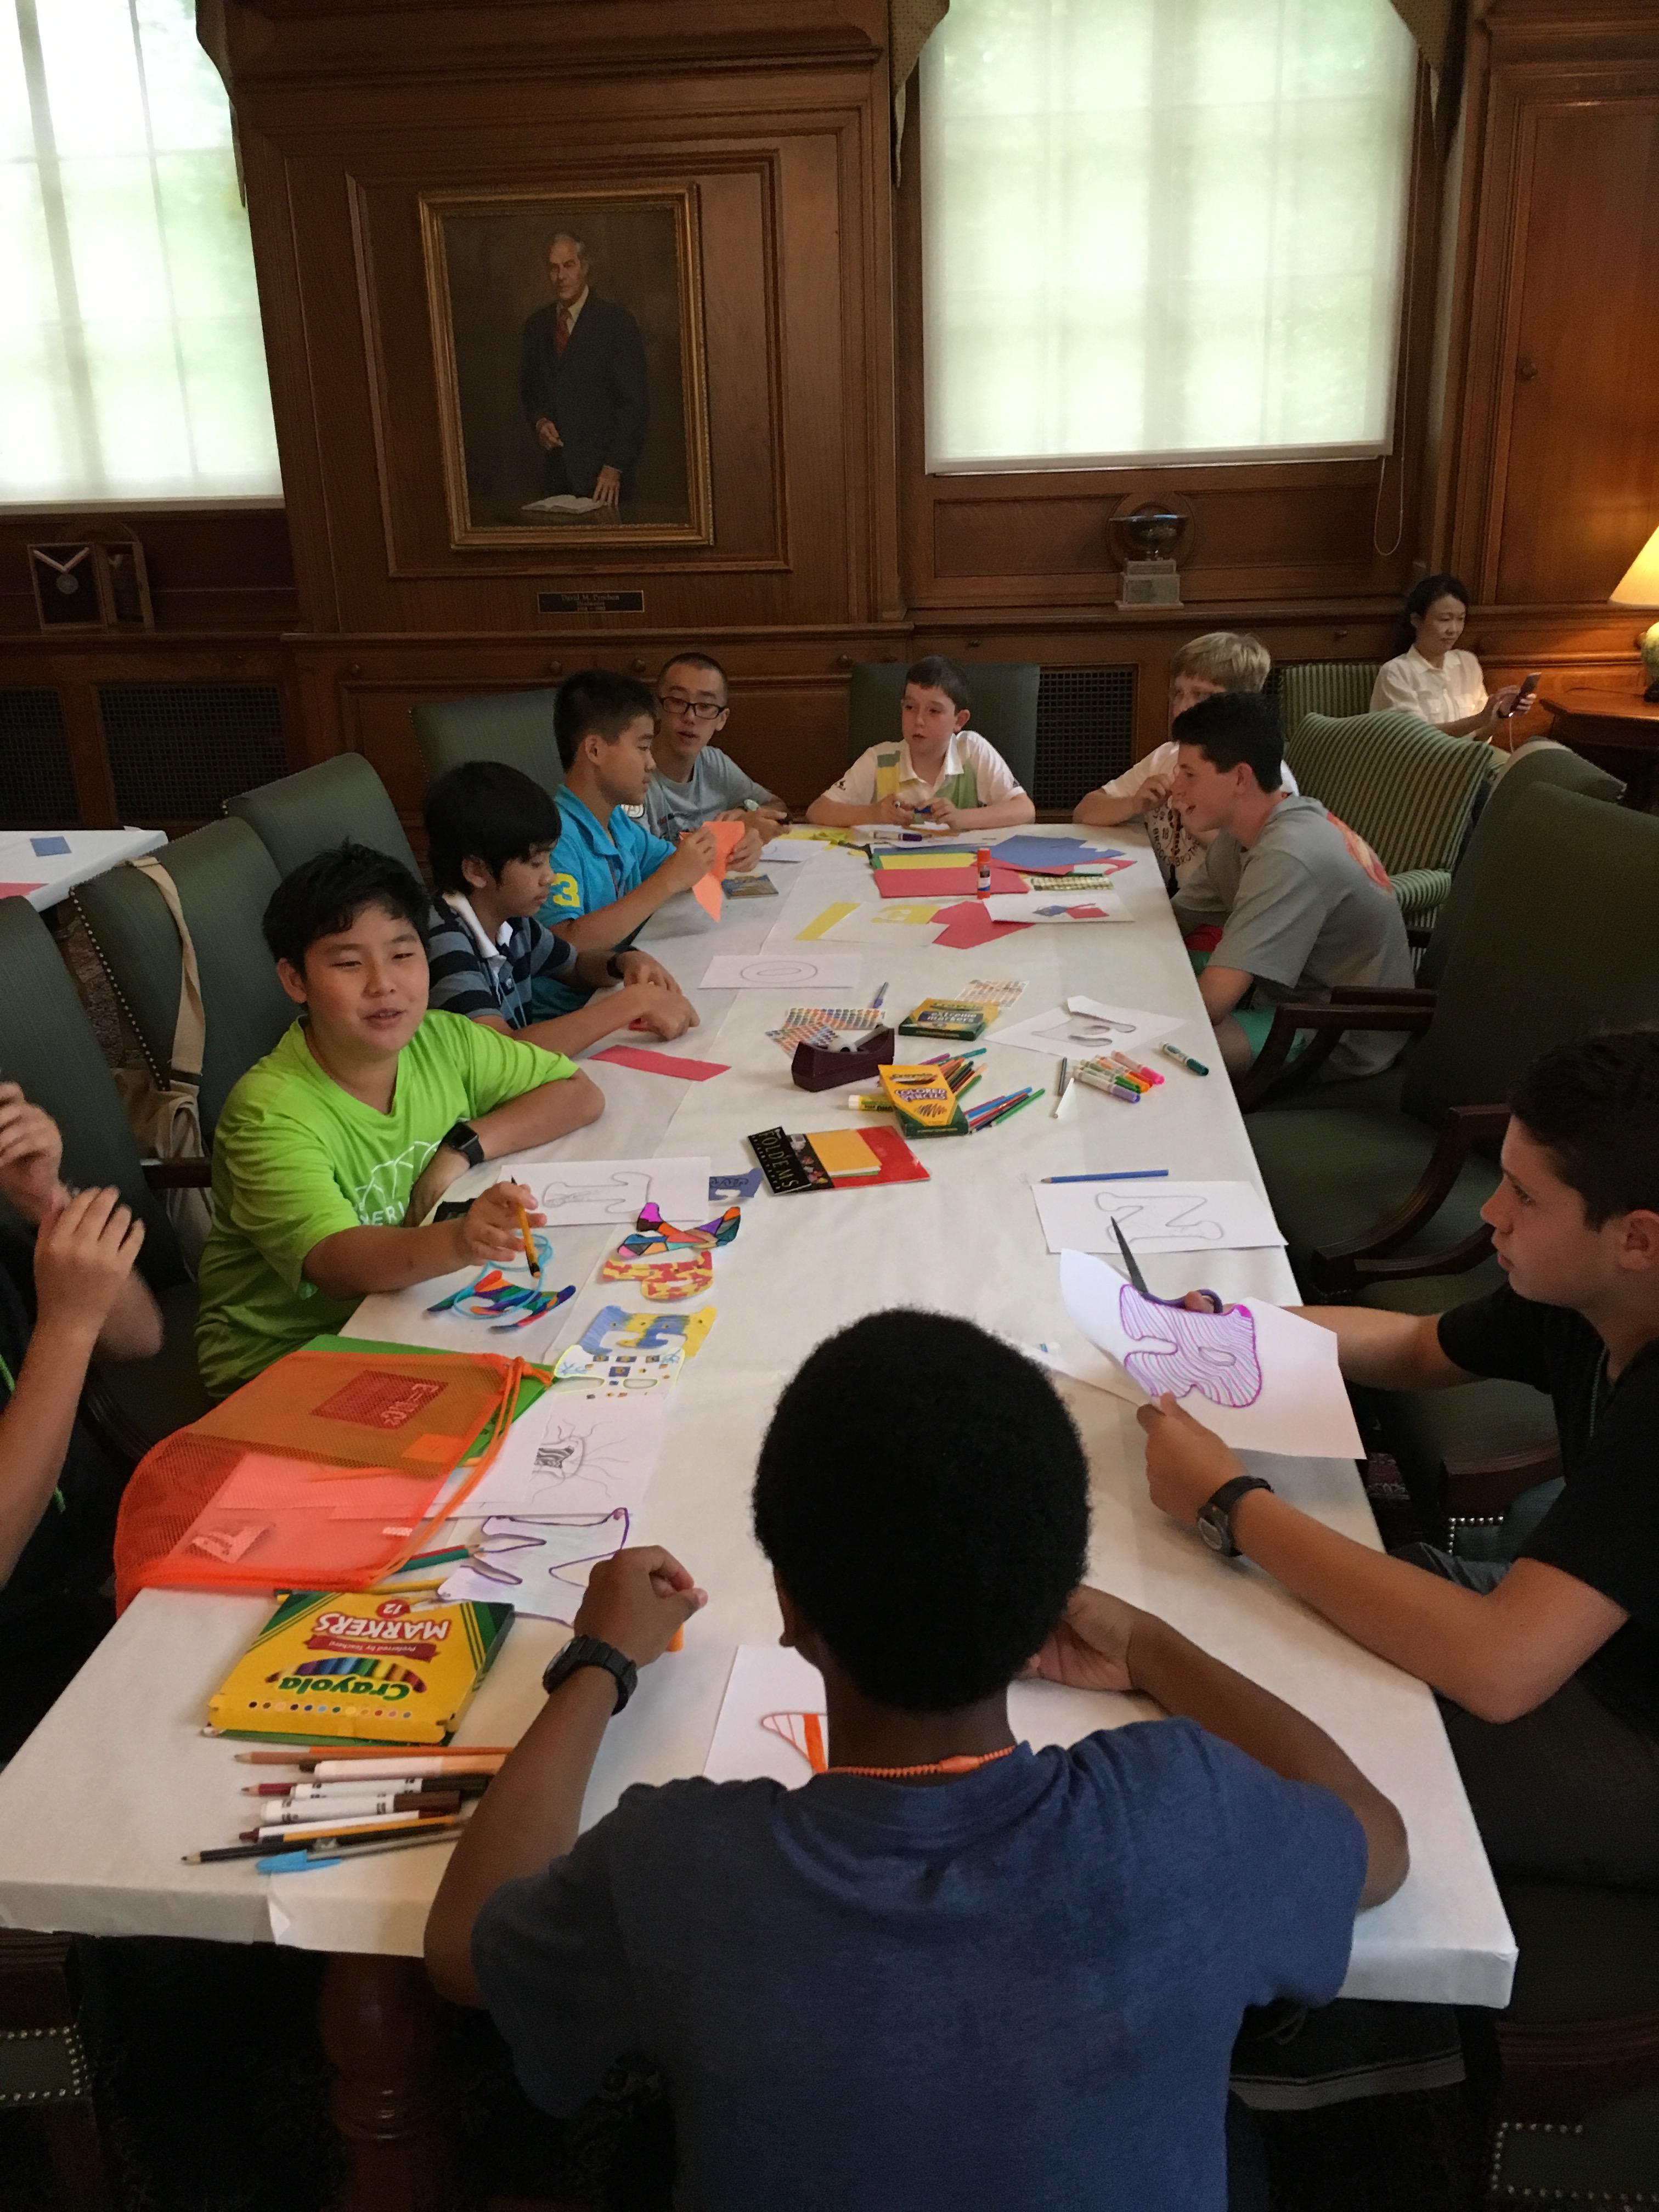 Students work on an art project in the MSB's Caswell Library.